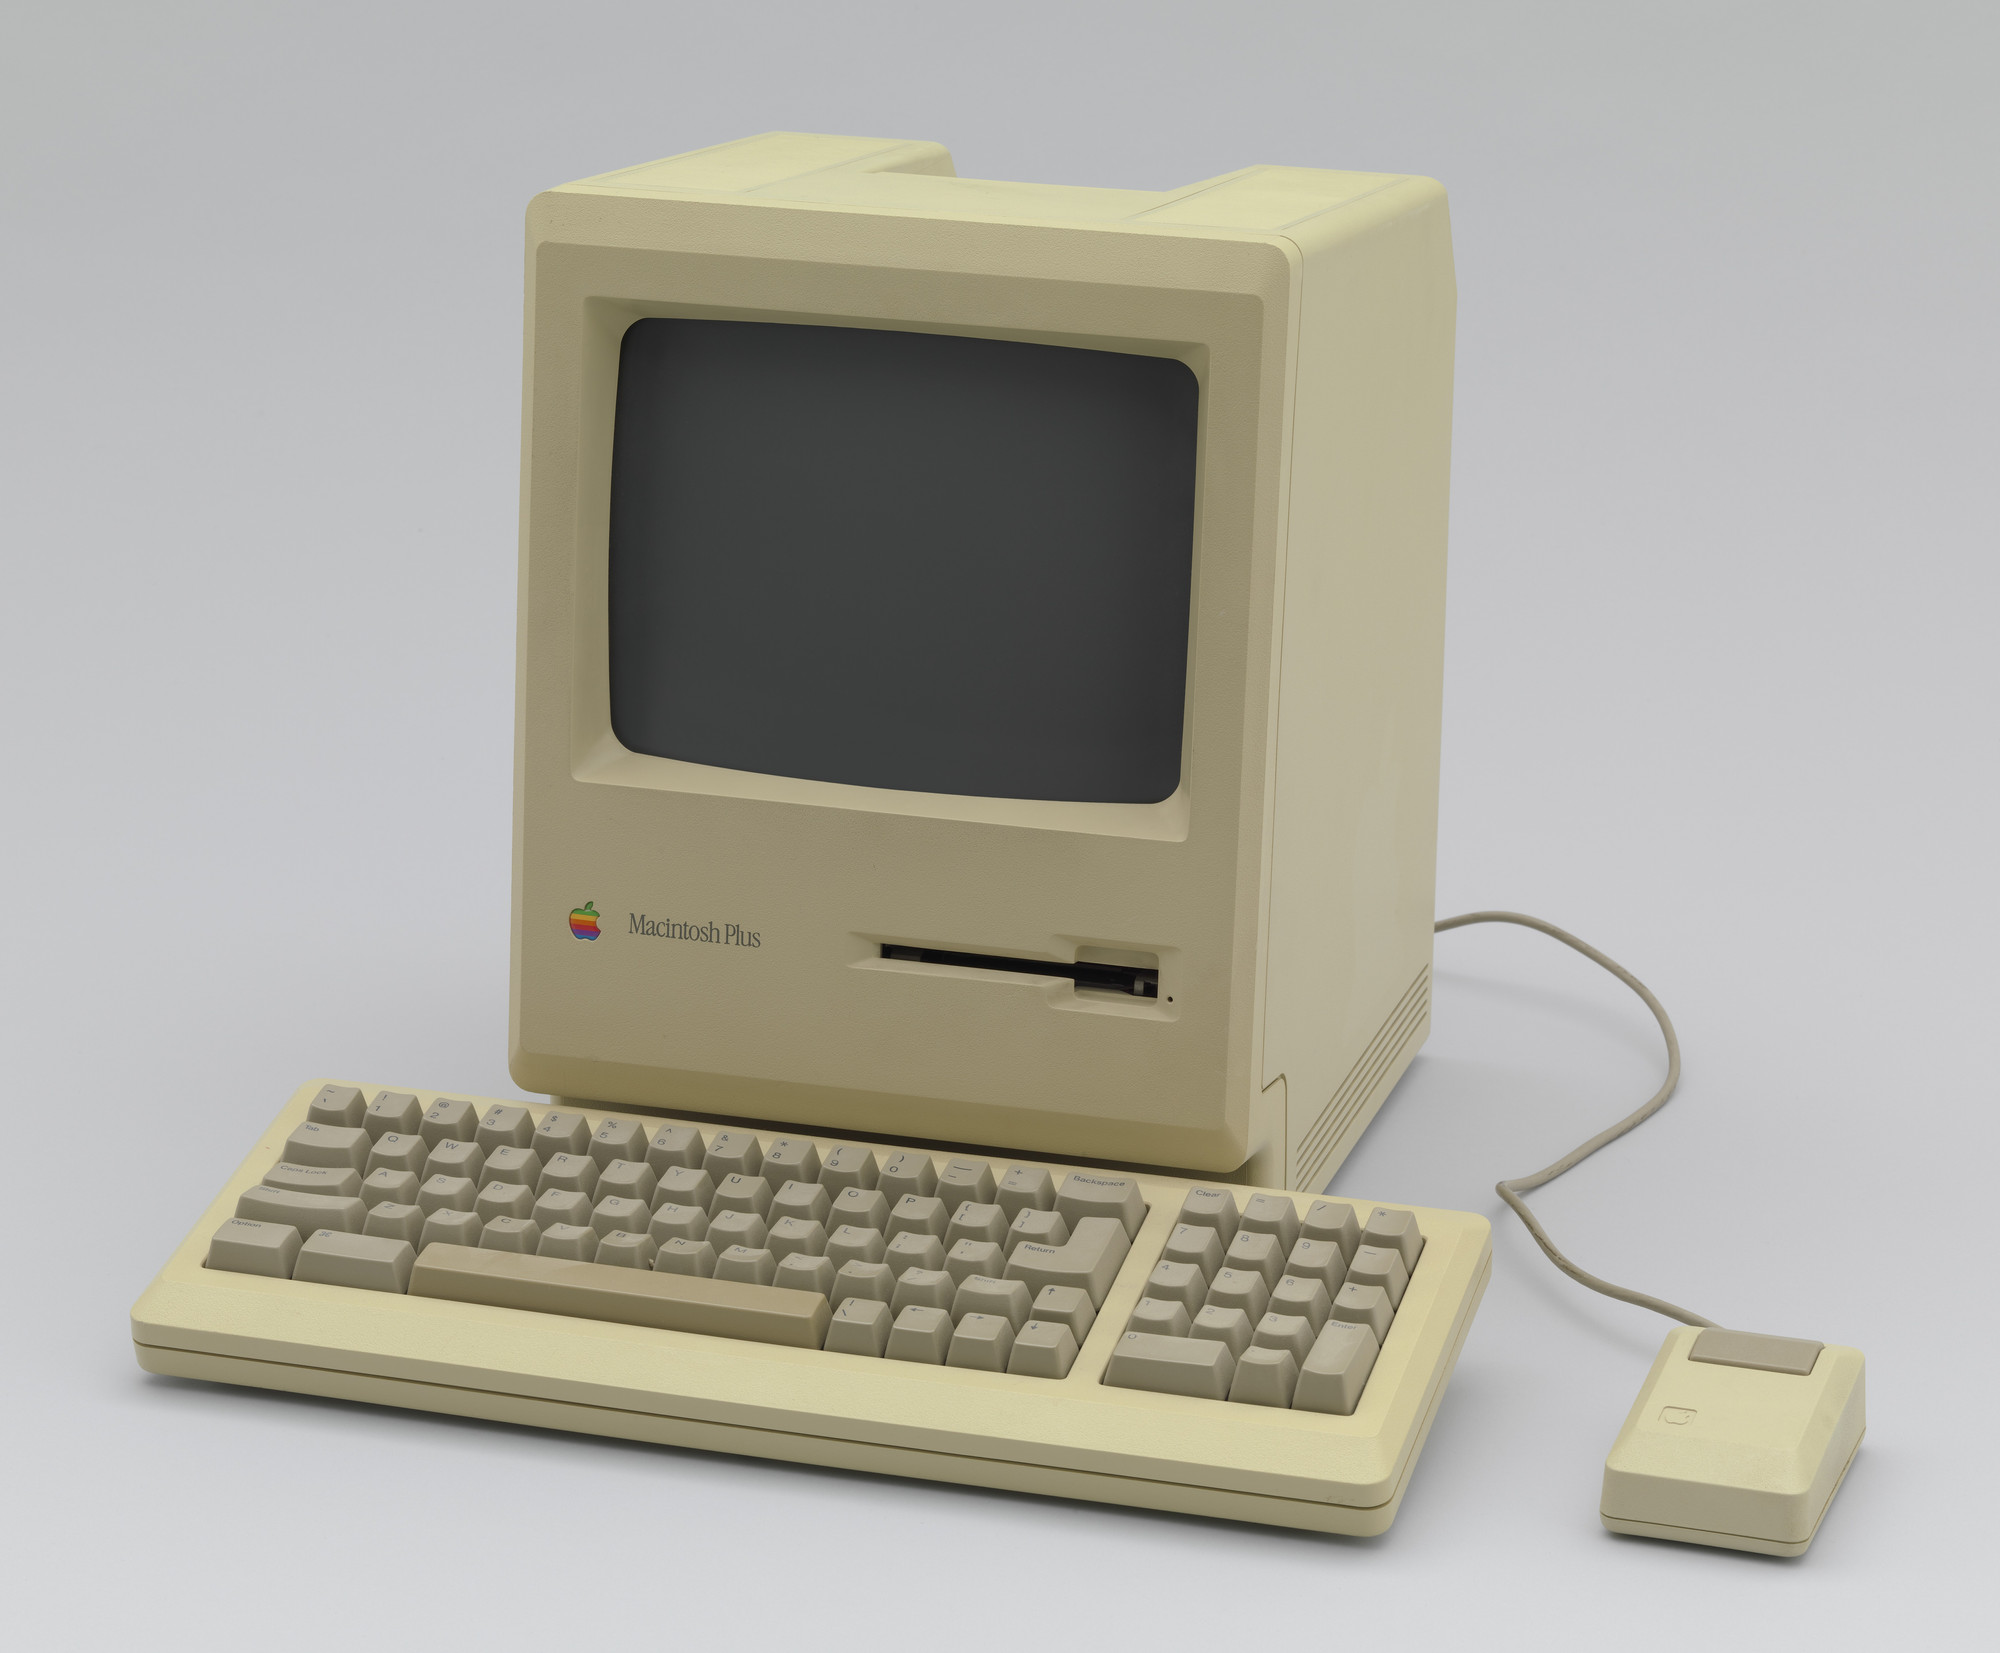 Apple, Inc.. Macintosh Plus Home Computer. 1986